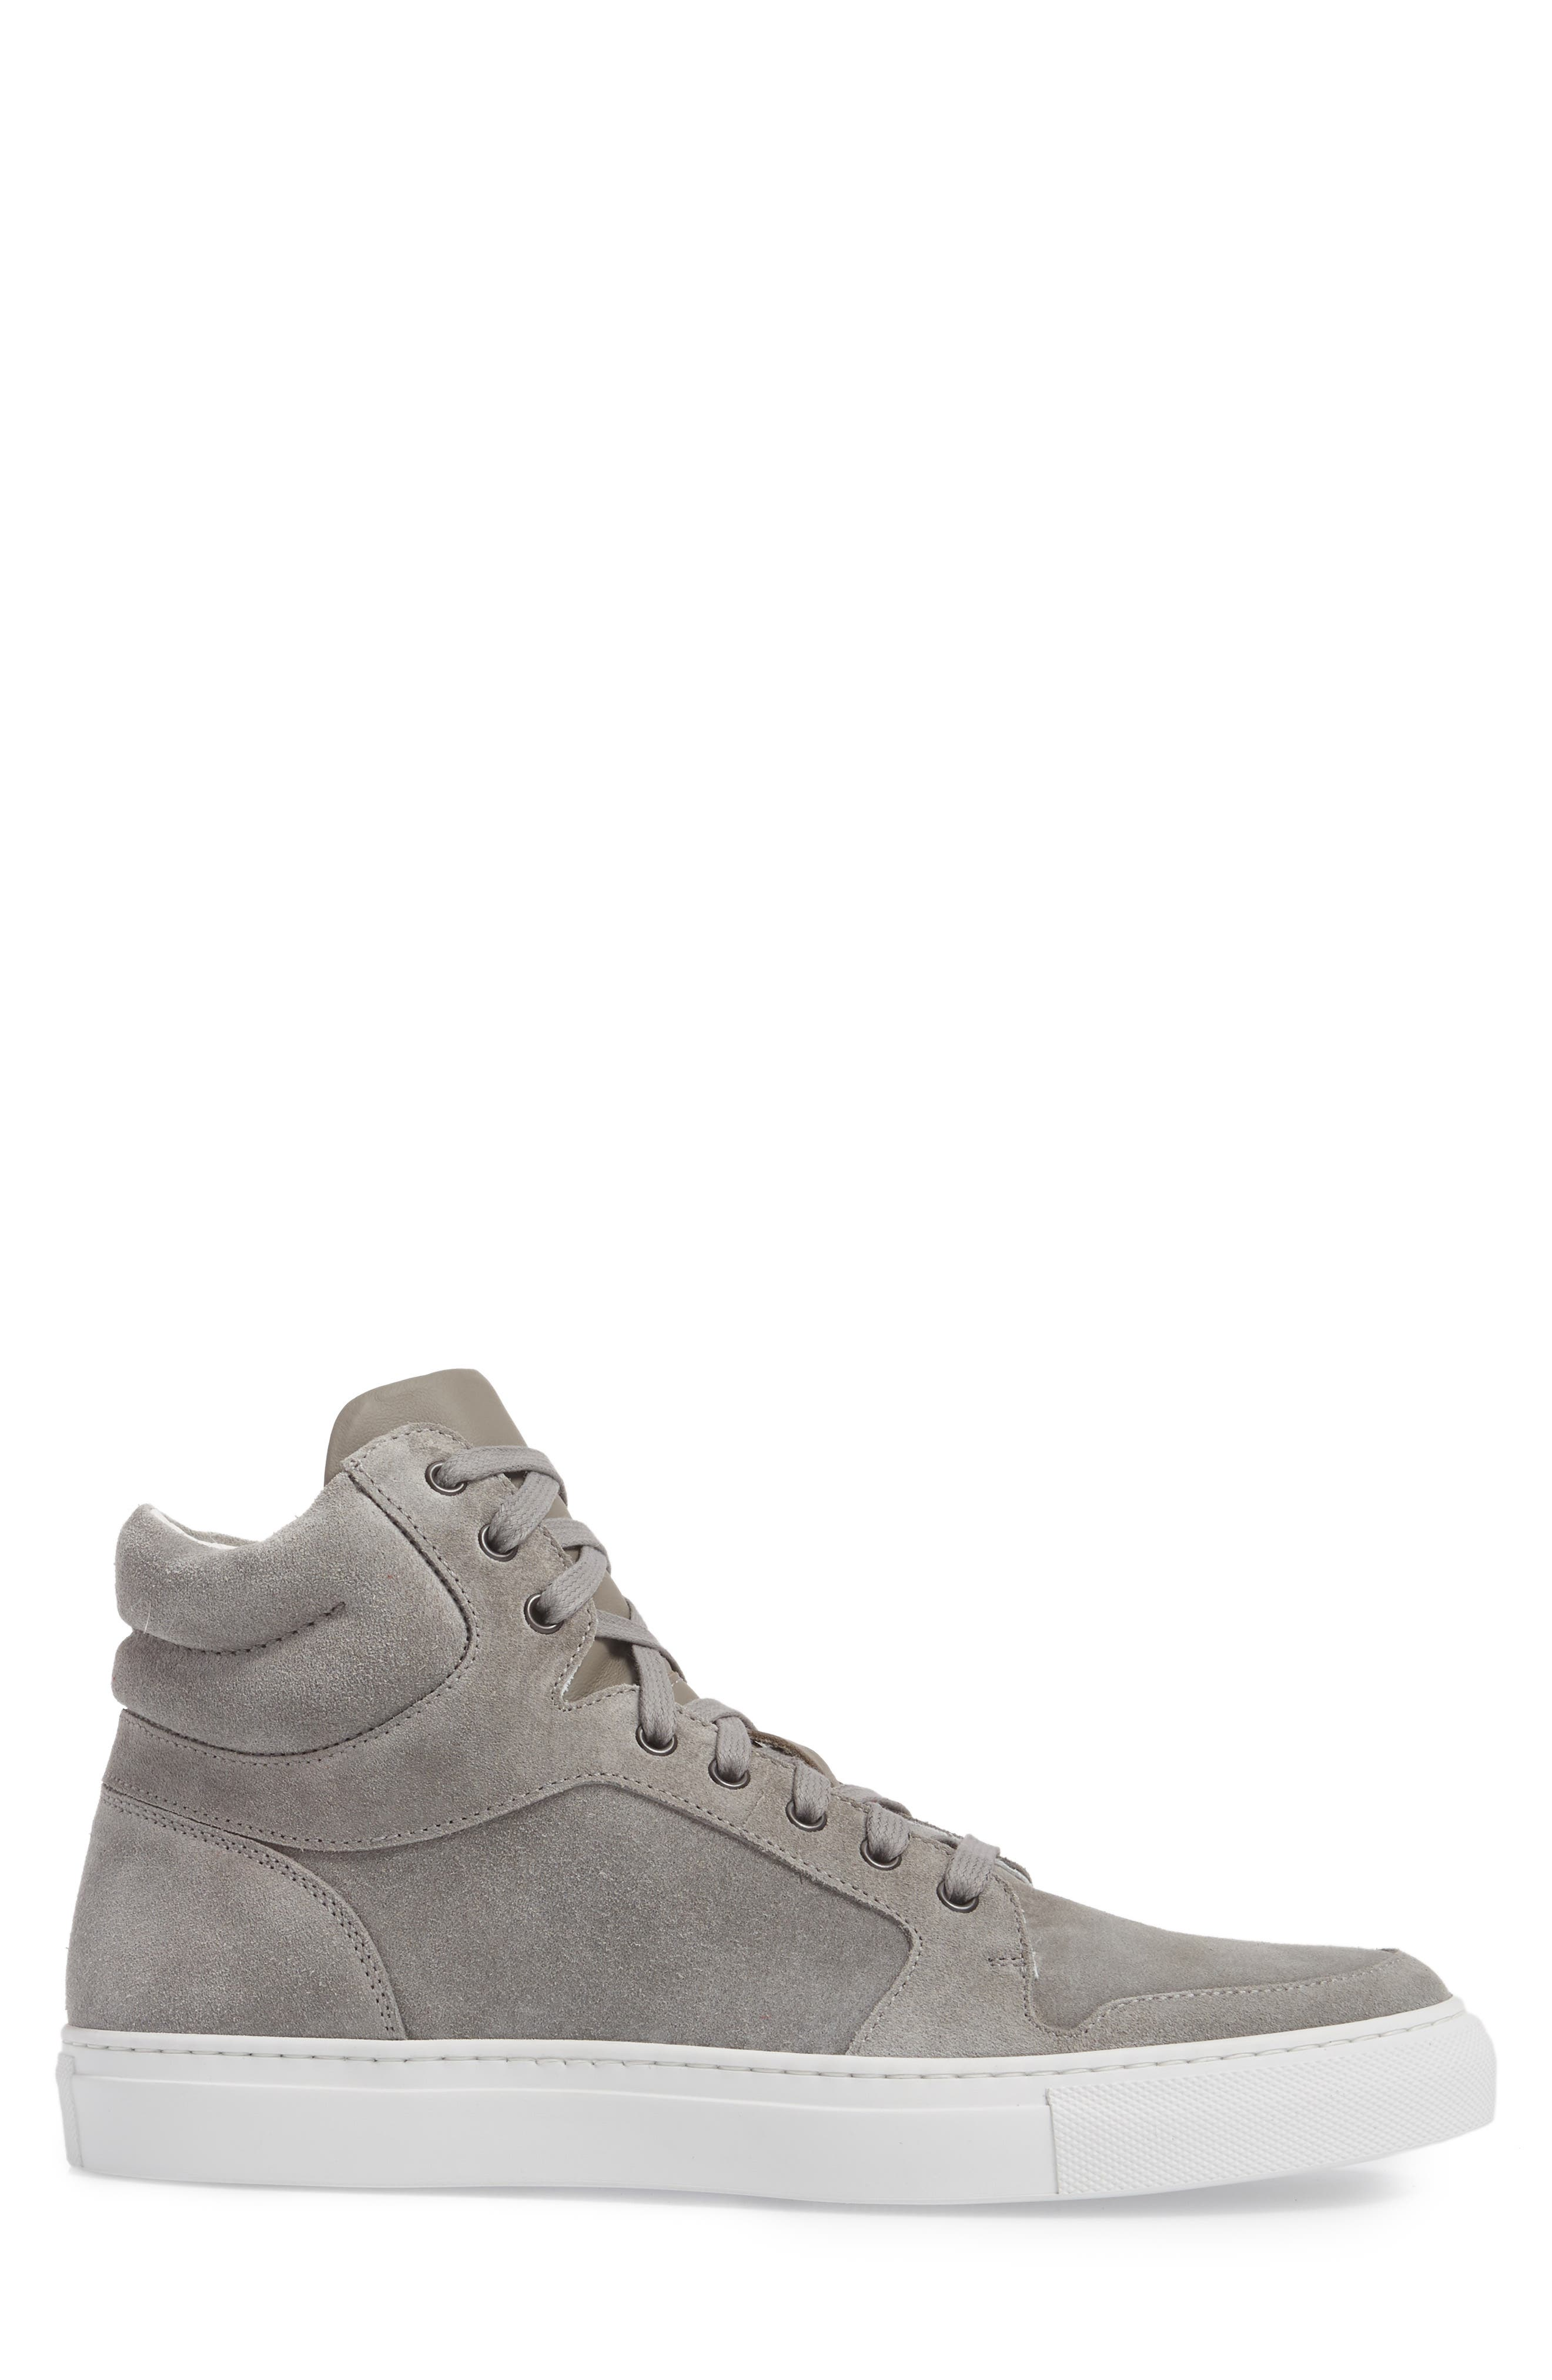 Belmont High Top Sneaker,                             Alternate thumbnail 3, color,                             Grey Suede